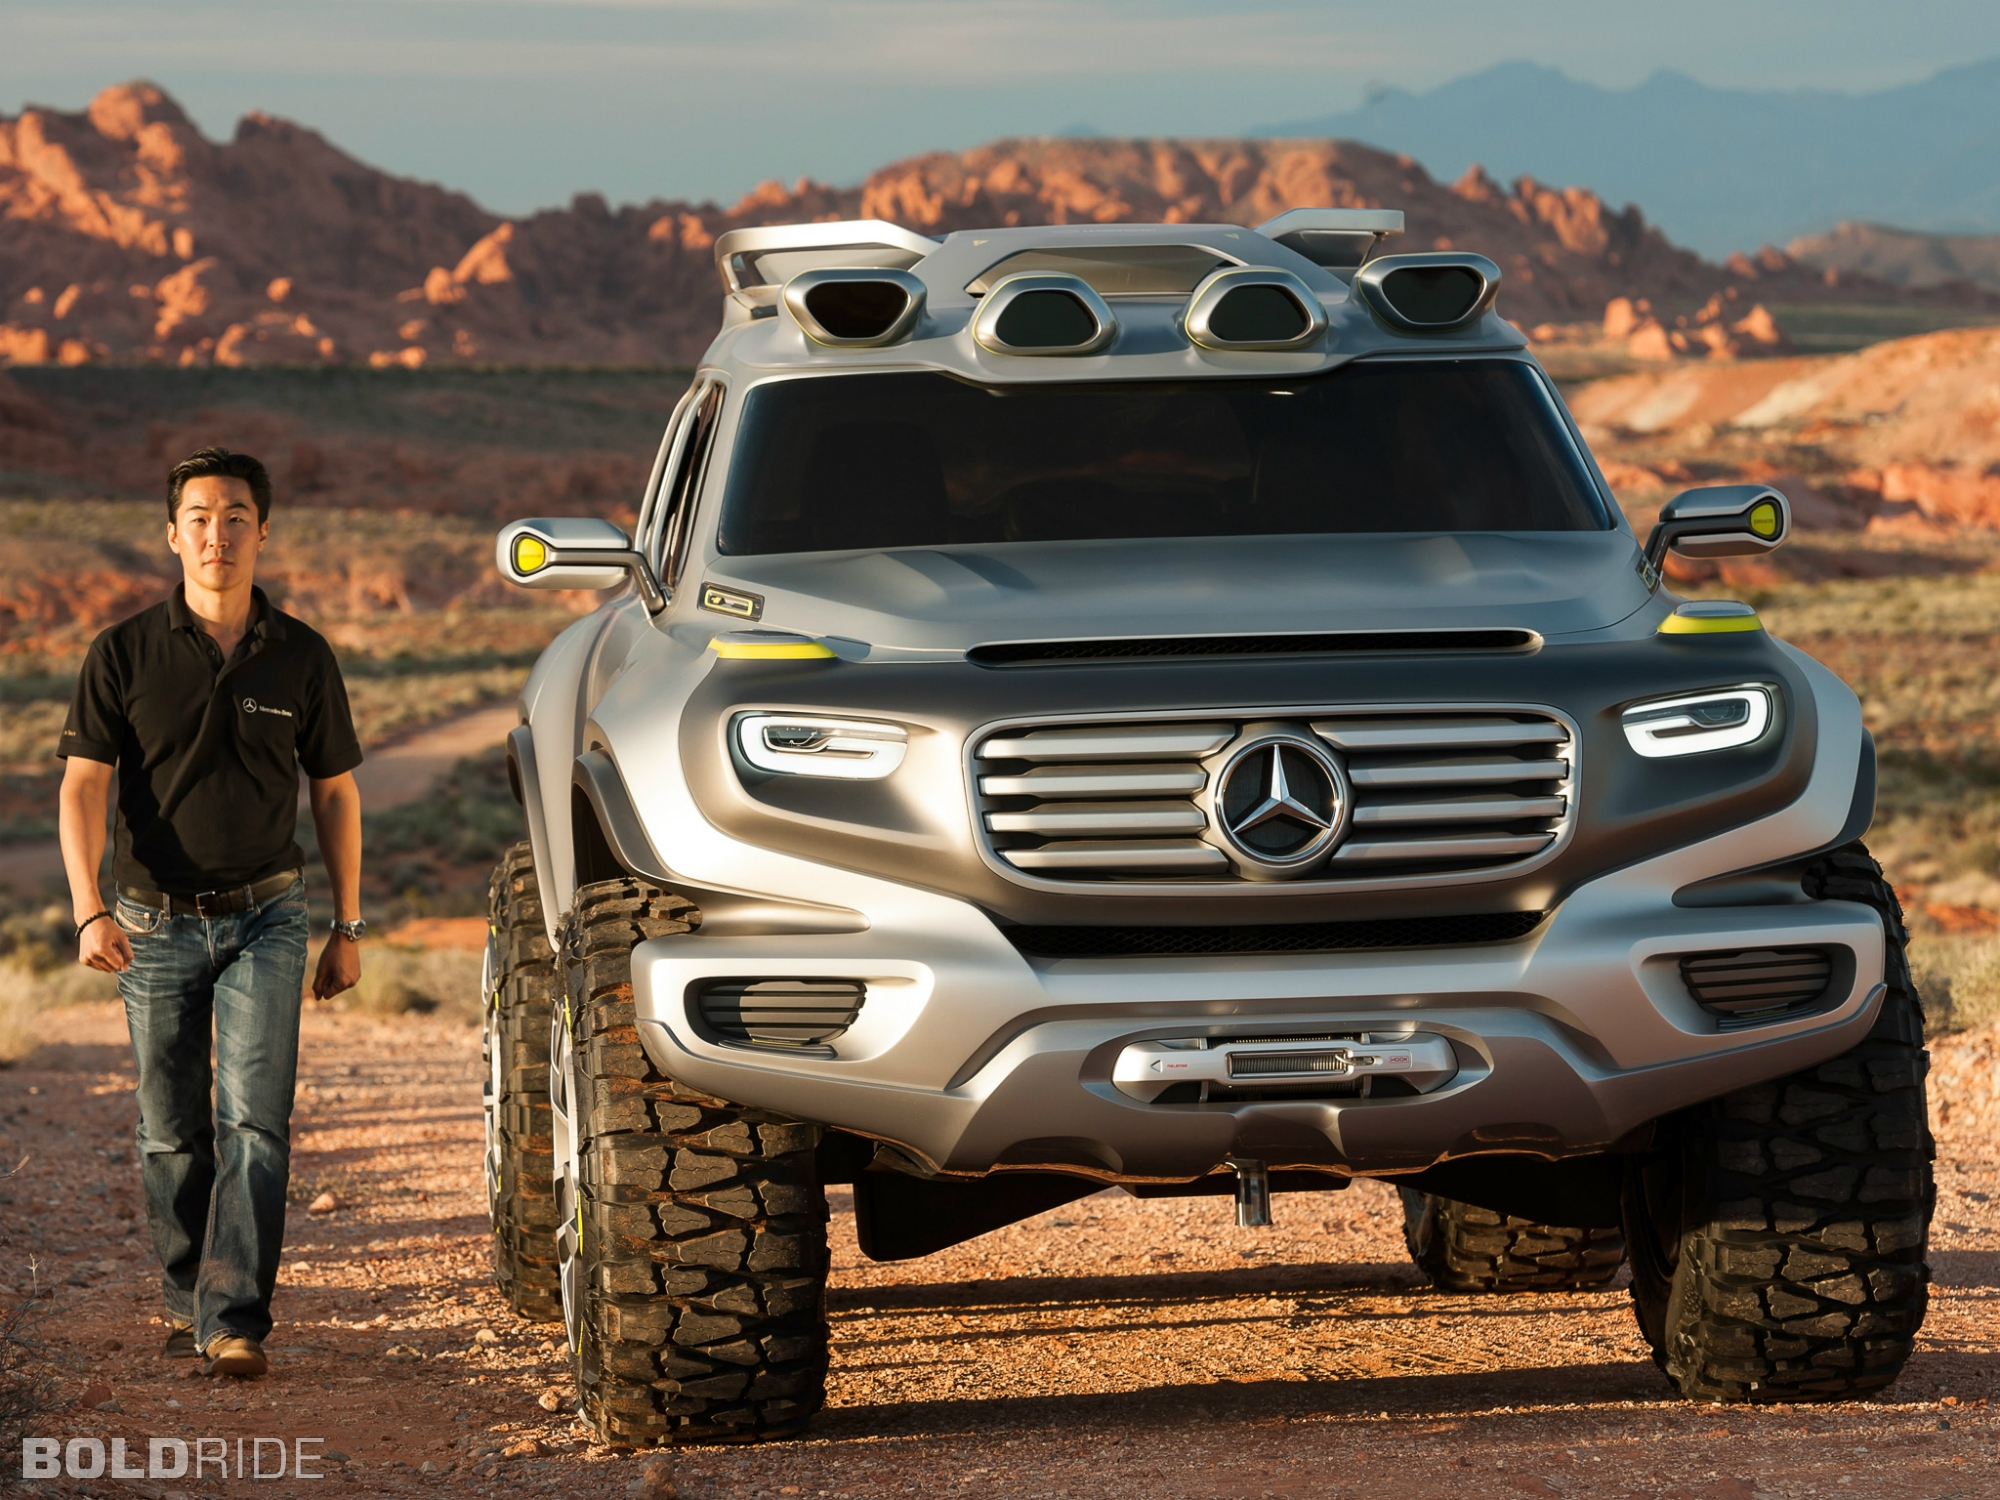 2012 mercedes benz ener g force concept 4x4 offroad suv d. Black Bedroom Furniture Sets. Home Design Ideas